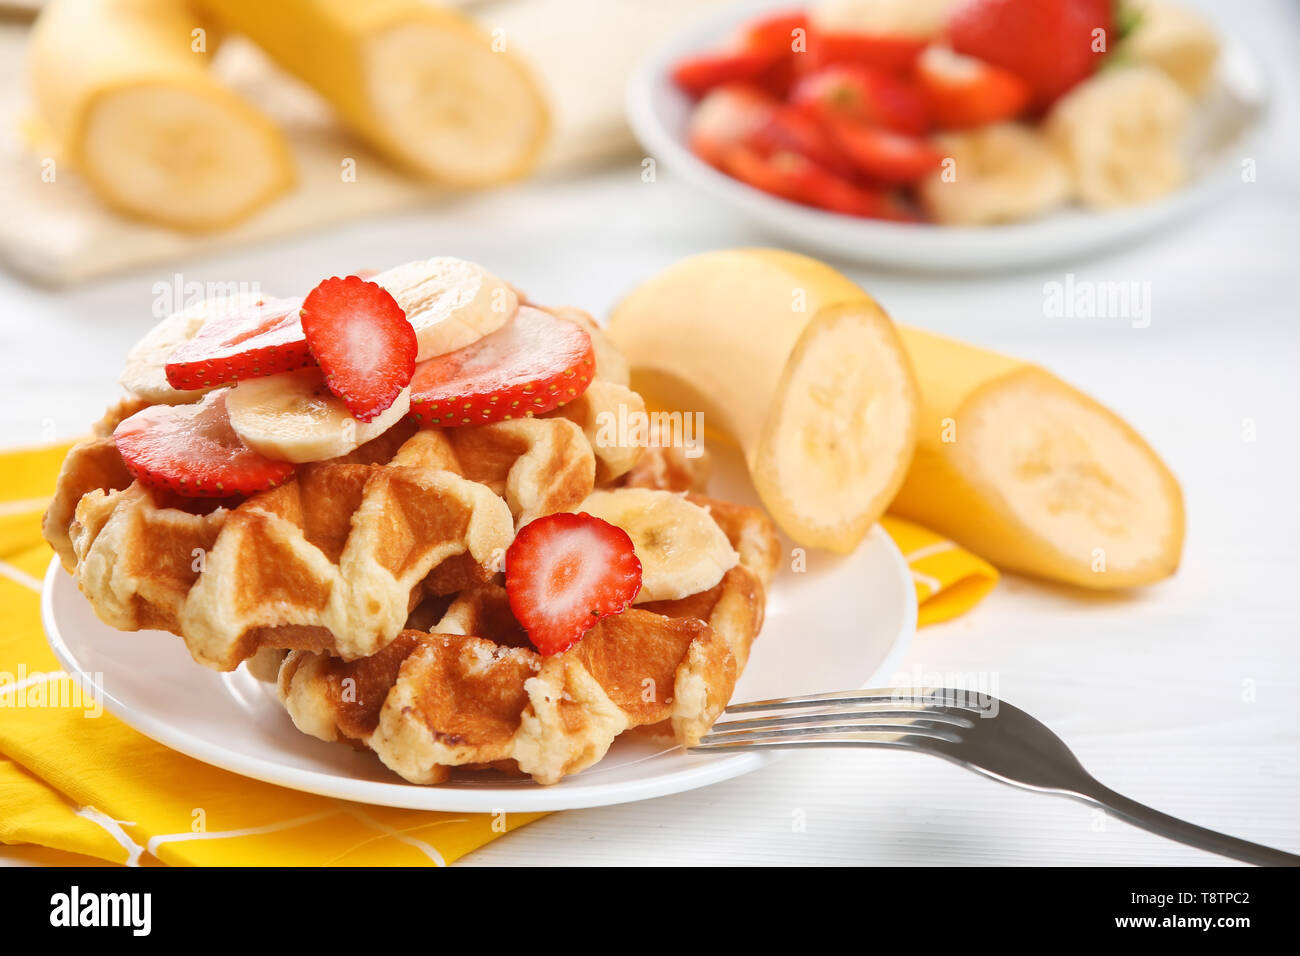 Delicious waffles with strawberry and banana slices on plate - Stock Image